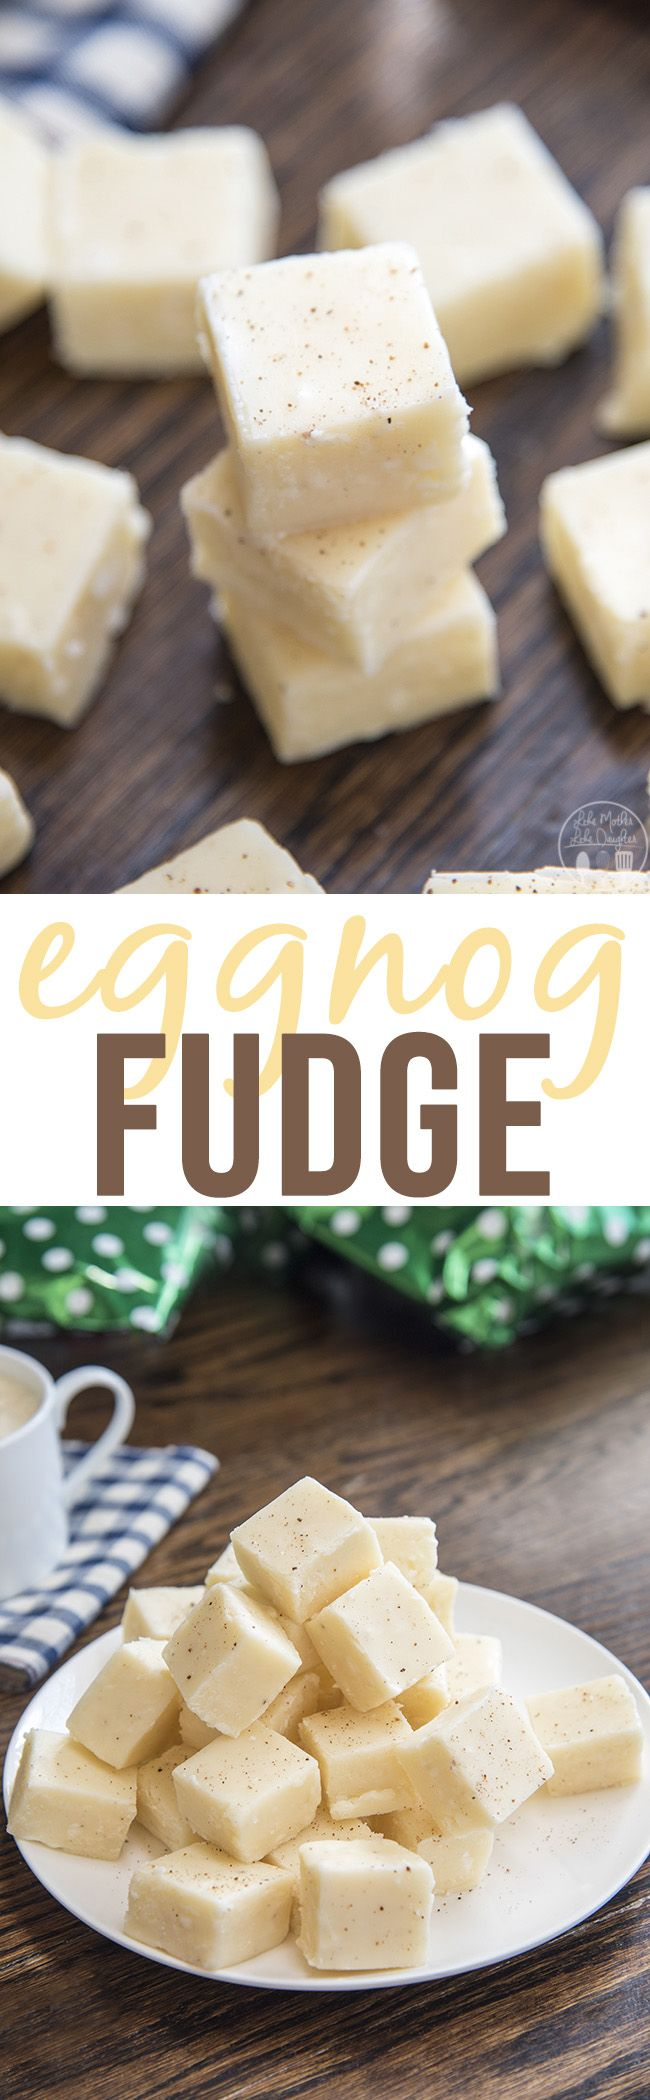 Eggnog Fudge - This smooth and creamy white chocolate eggnog fudge has ...